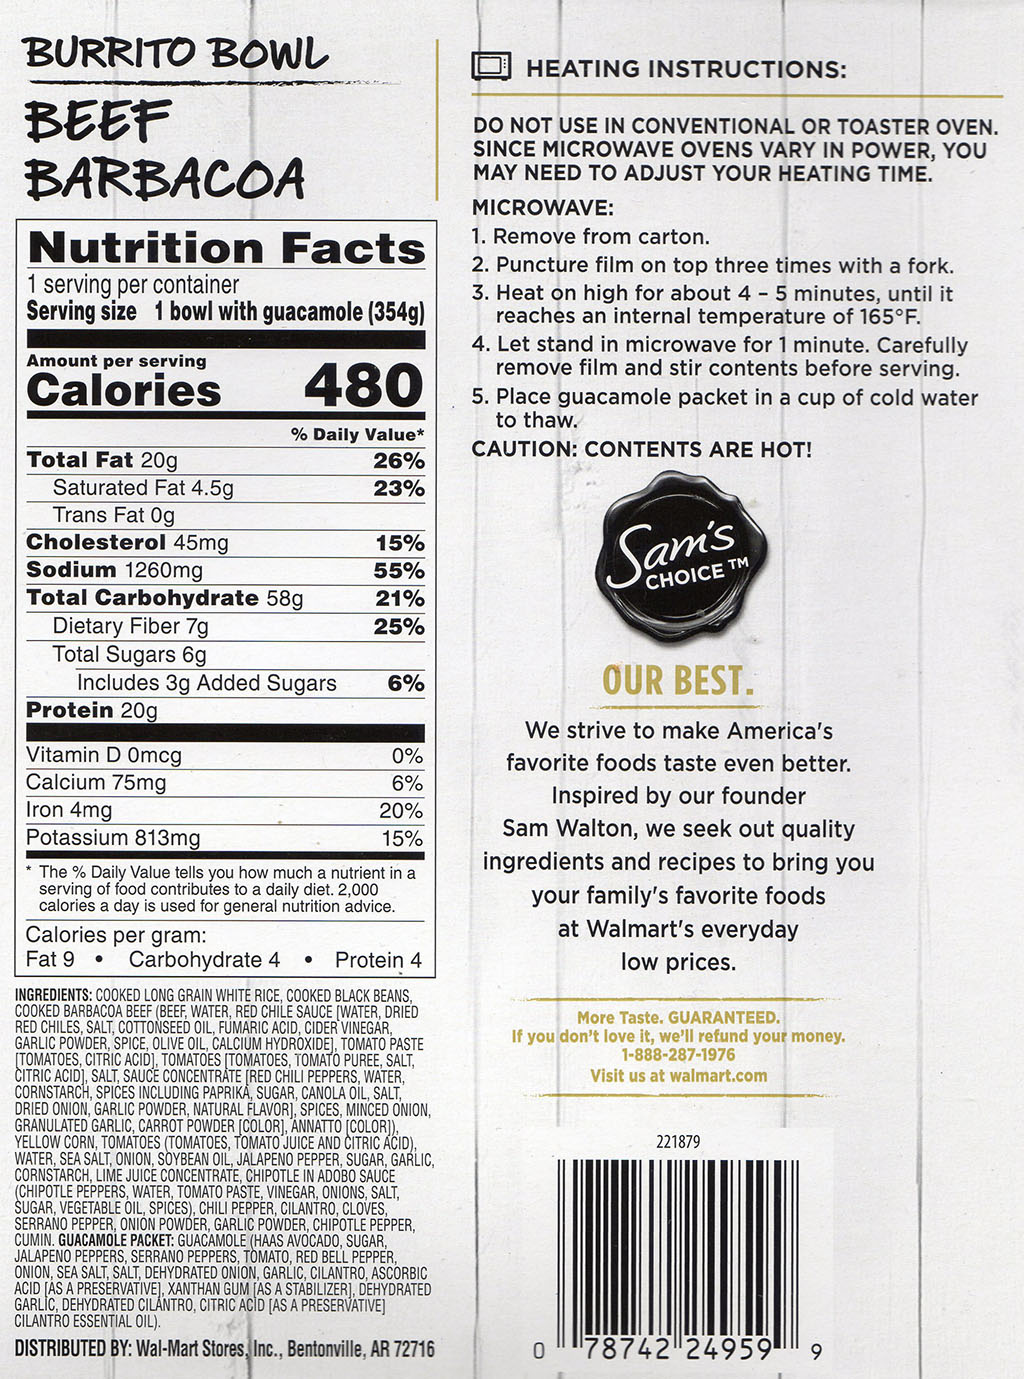 Sam's Choice Beef Barbacoa Burrito Bowl nutrition, ingredients, cooking instructions